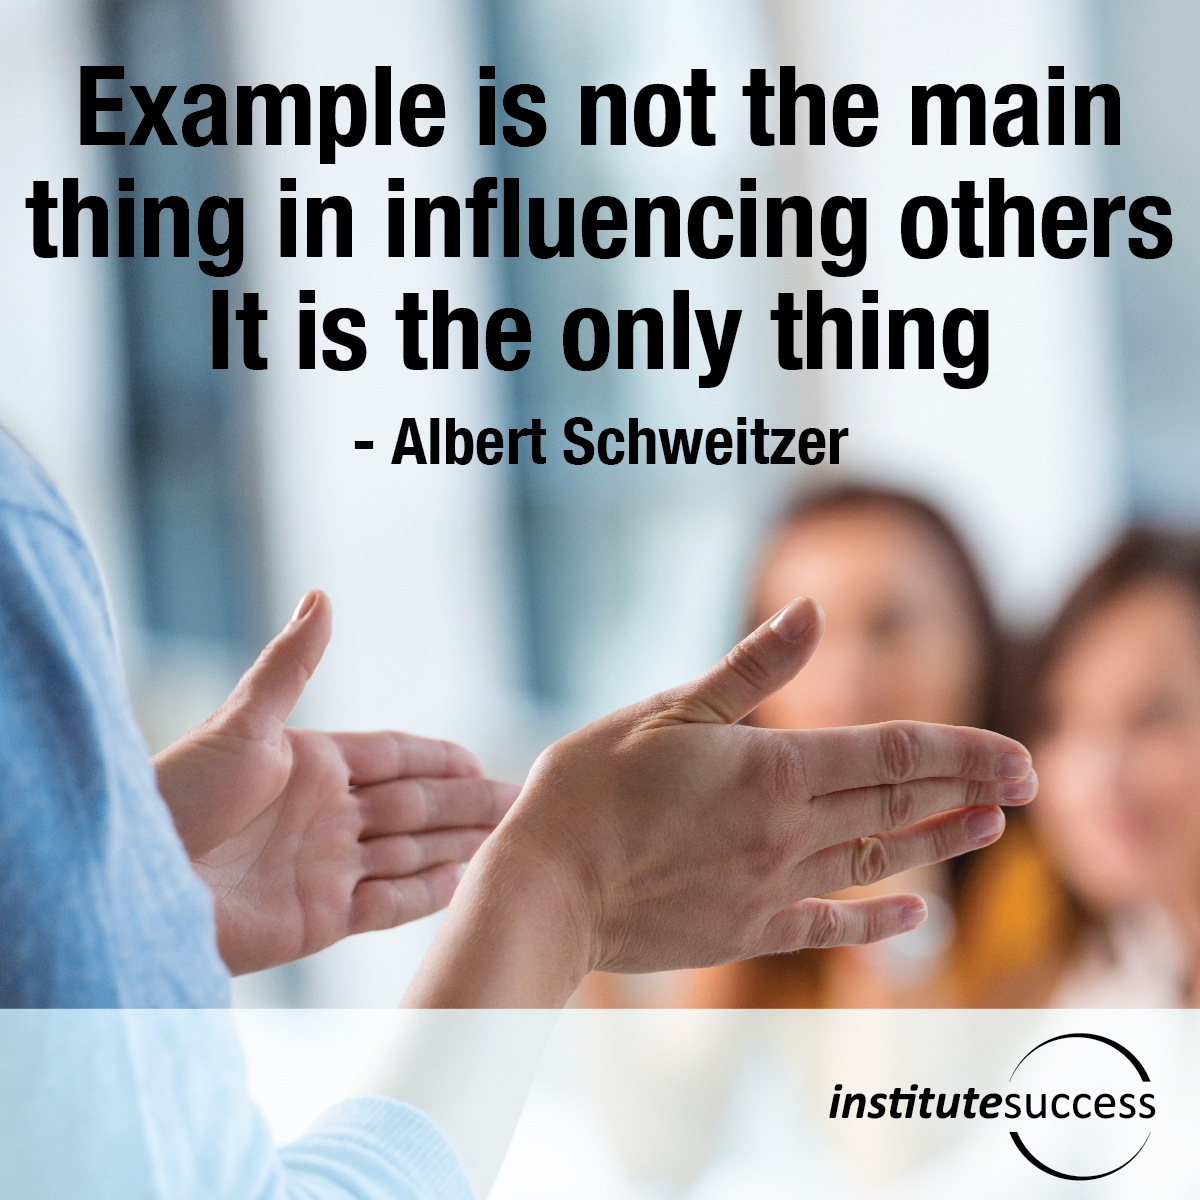 Example is not the main thing in influencing others. It is the only thing – Albert Schweitzer